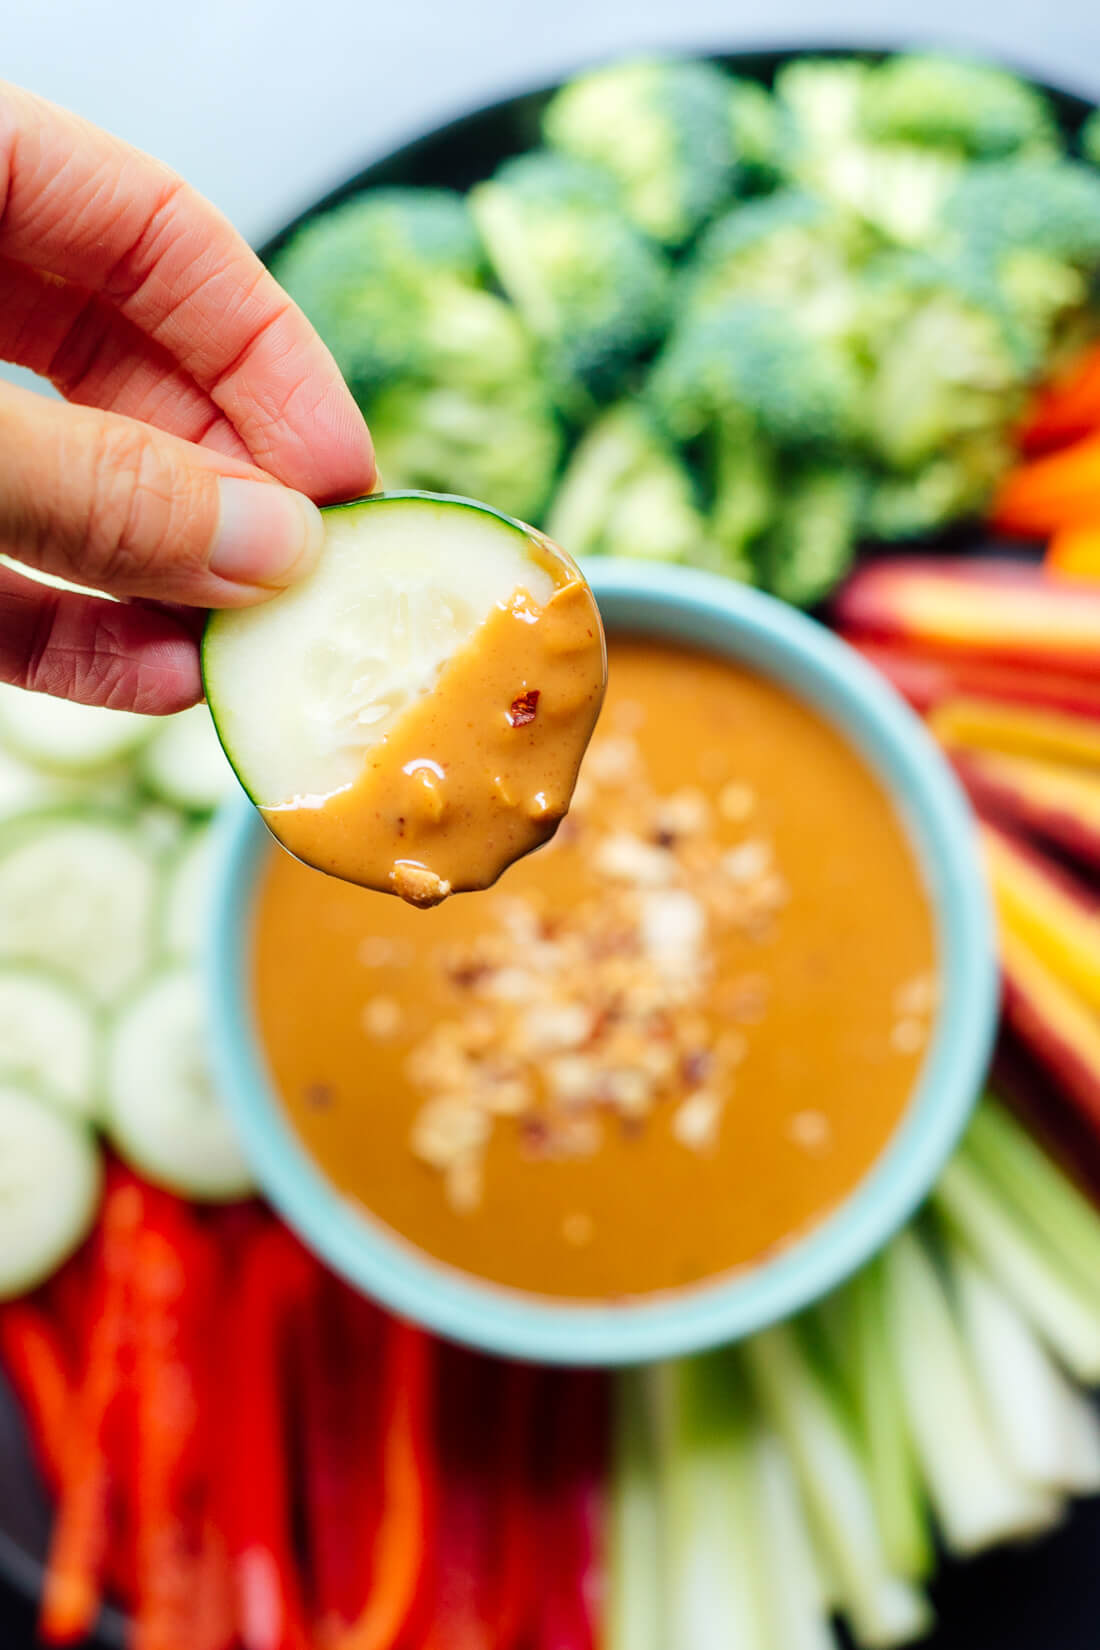 Basic peanut sauce recipe, for dipping or drizzling!